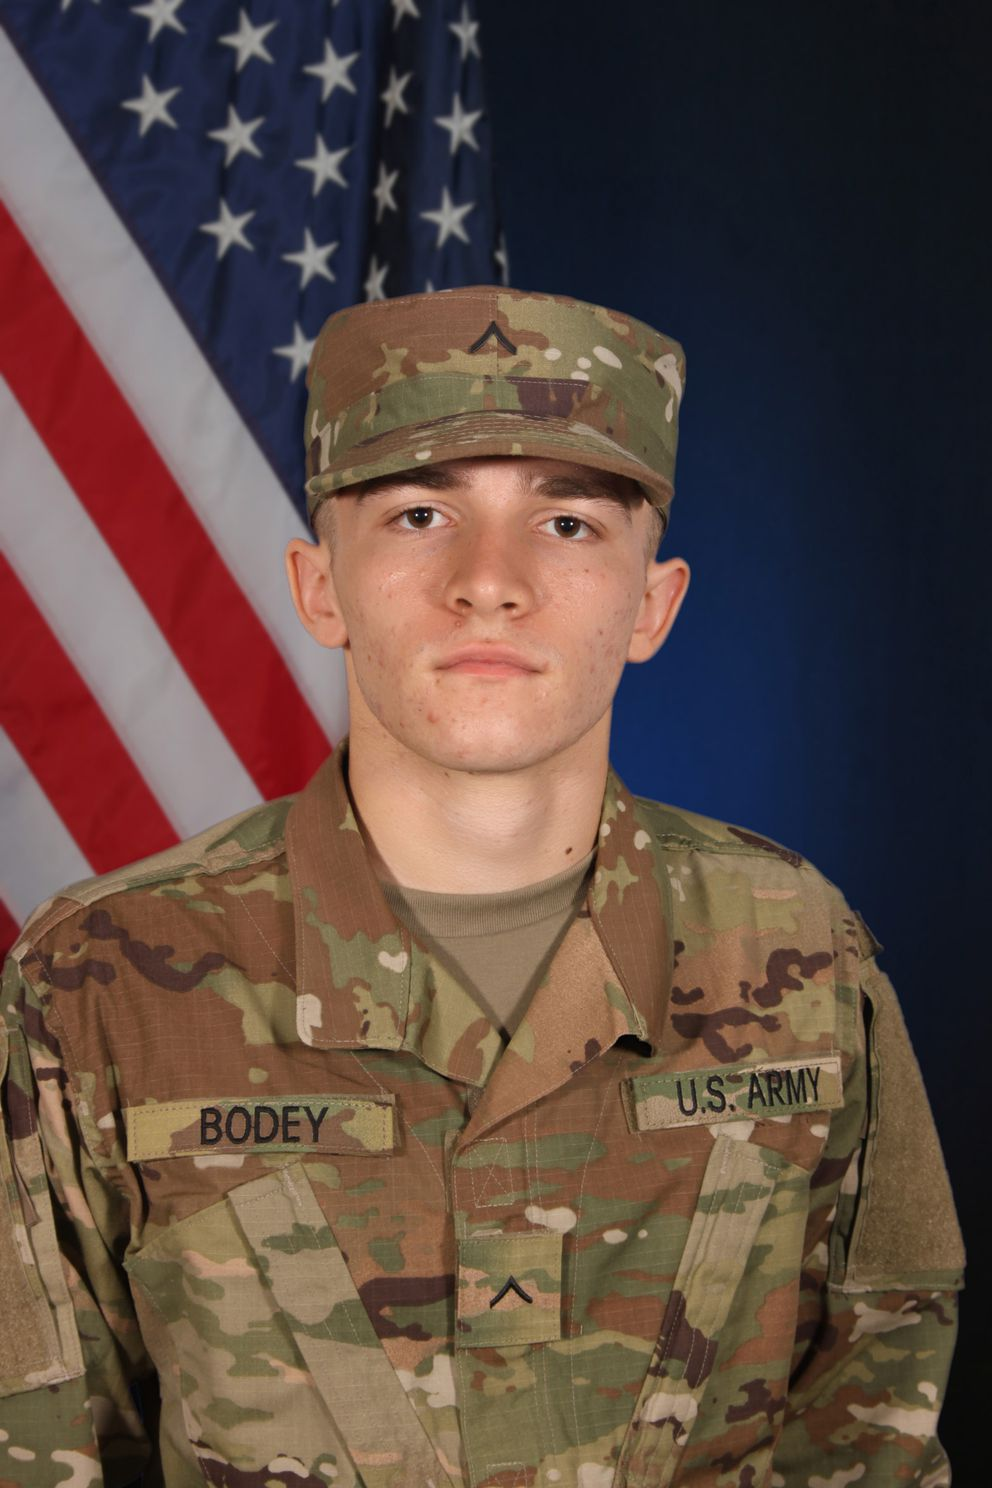 Spc. Charles Michael Bodey was found dead in his Fort Wainwright barracks room by fellow soldiers Monday, June 17, 2019. (US Army photo)